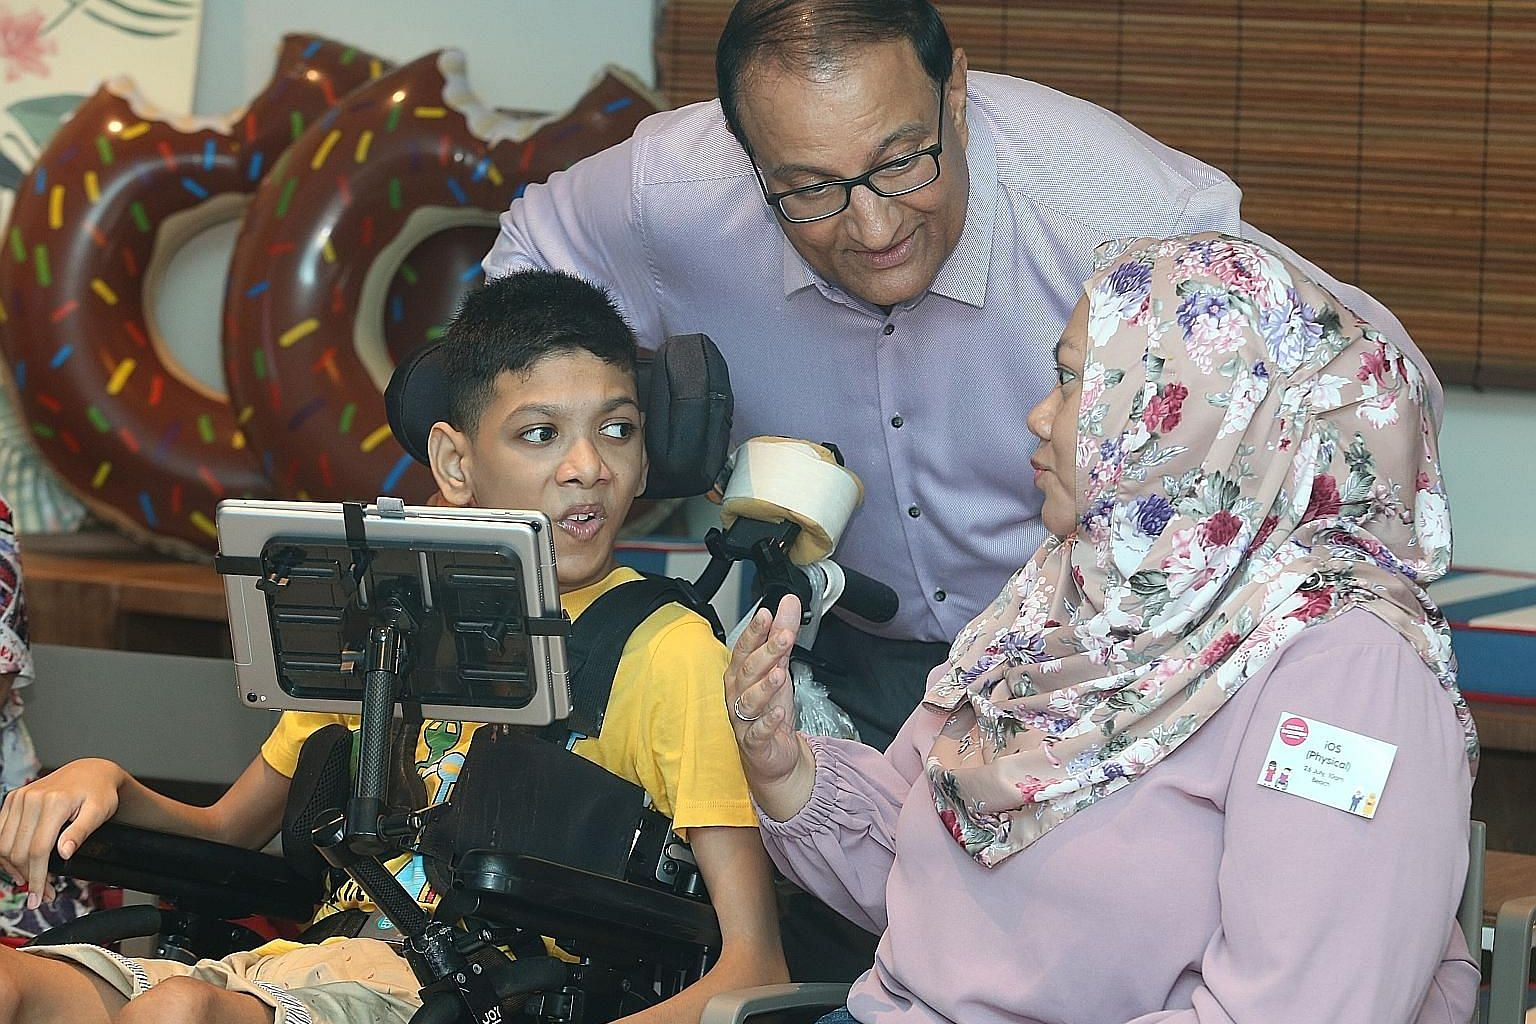 Madam Siti Fadillah Mohamed Noor, 41, and her son Muhammad Sayfullah Mohamad Sahrin, 16, chatting with Minister for Communications and Information S. Iswaran at the Digital Inclusion Festival yesterday. The teenager, who has quadriplegic cerebral palsy, a